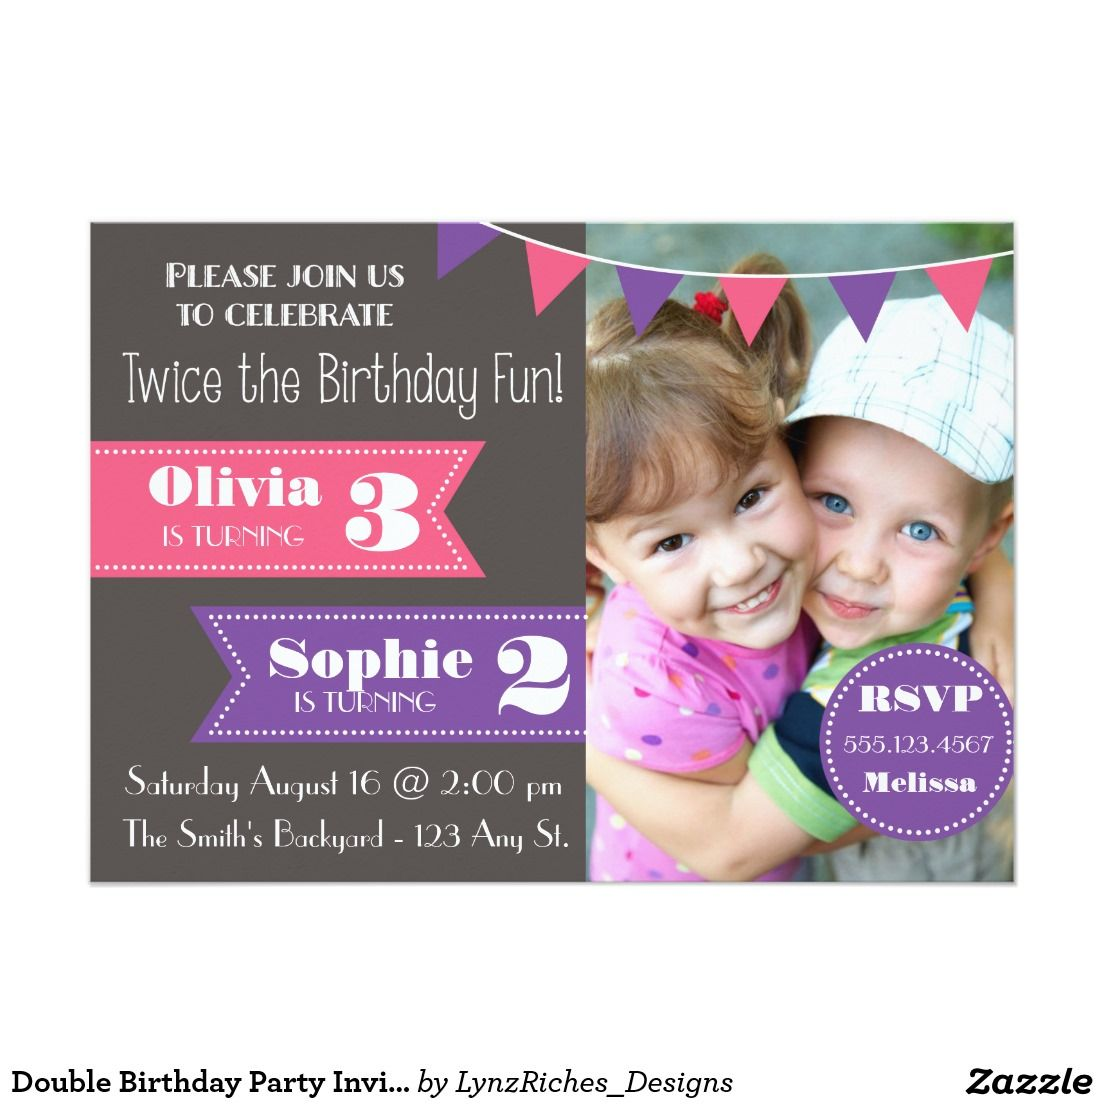 20 joint birthday party invitation wording 6 ruti and artis 20 joint birthday party invitation wording 6 stopboris Gallery